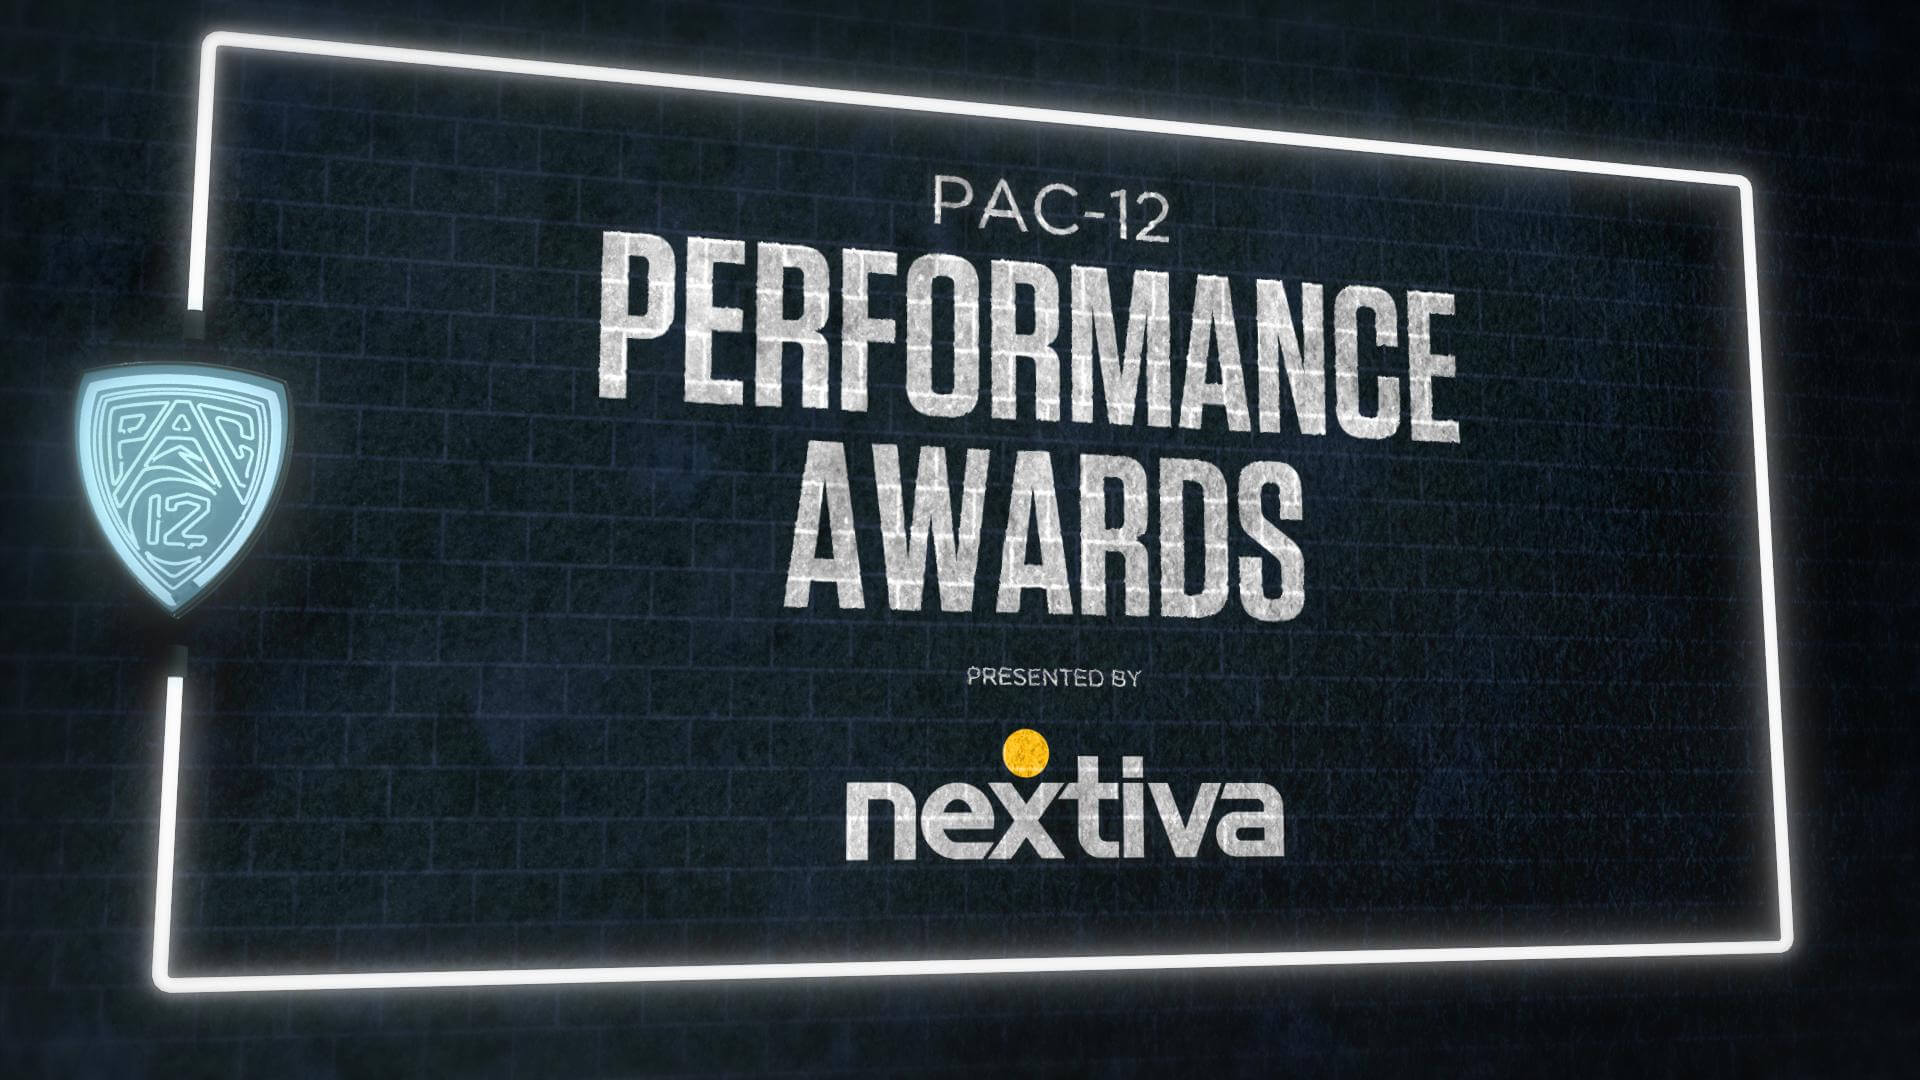 Pac-12 Performance Awards - Presented by Nextiva